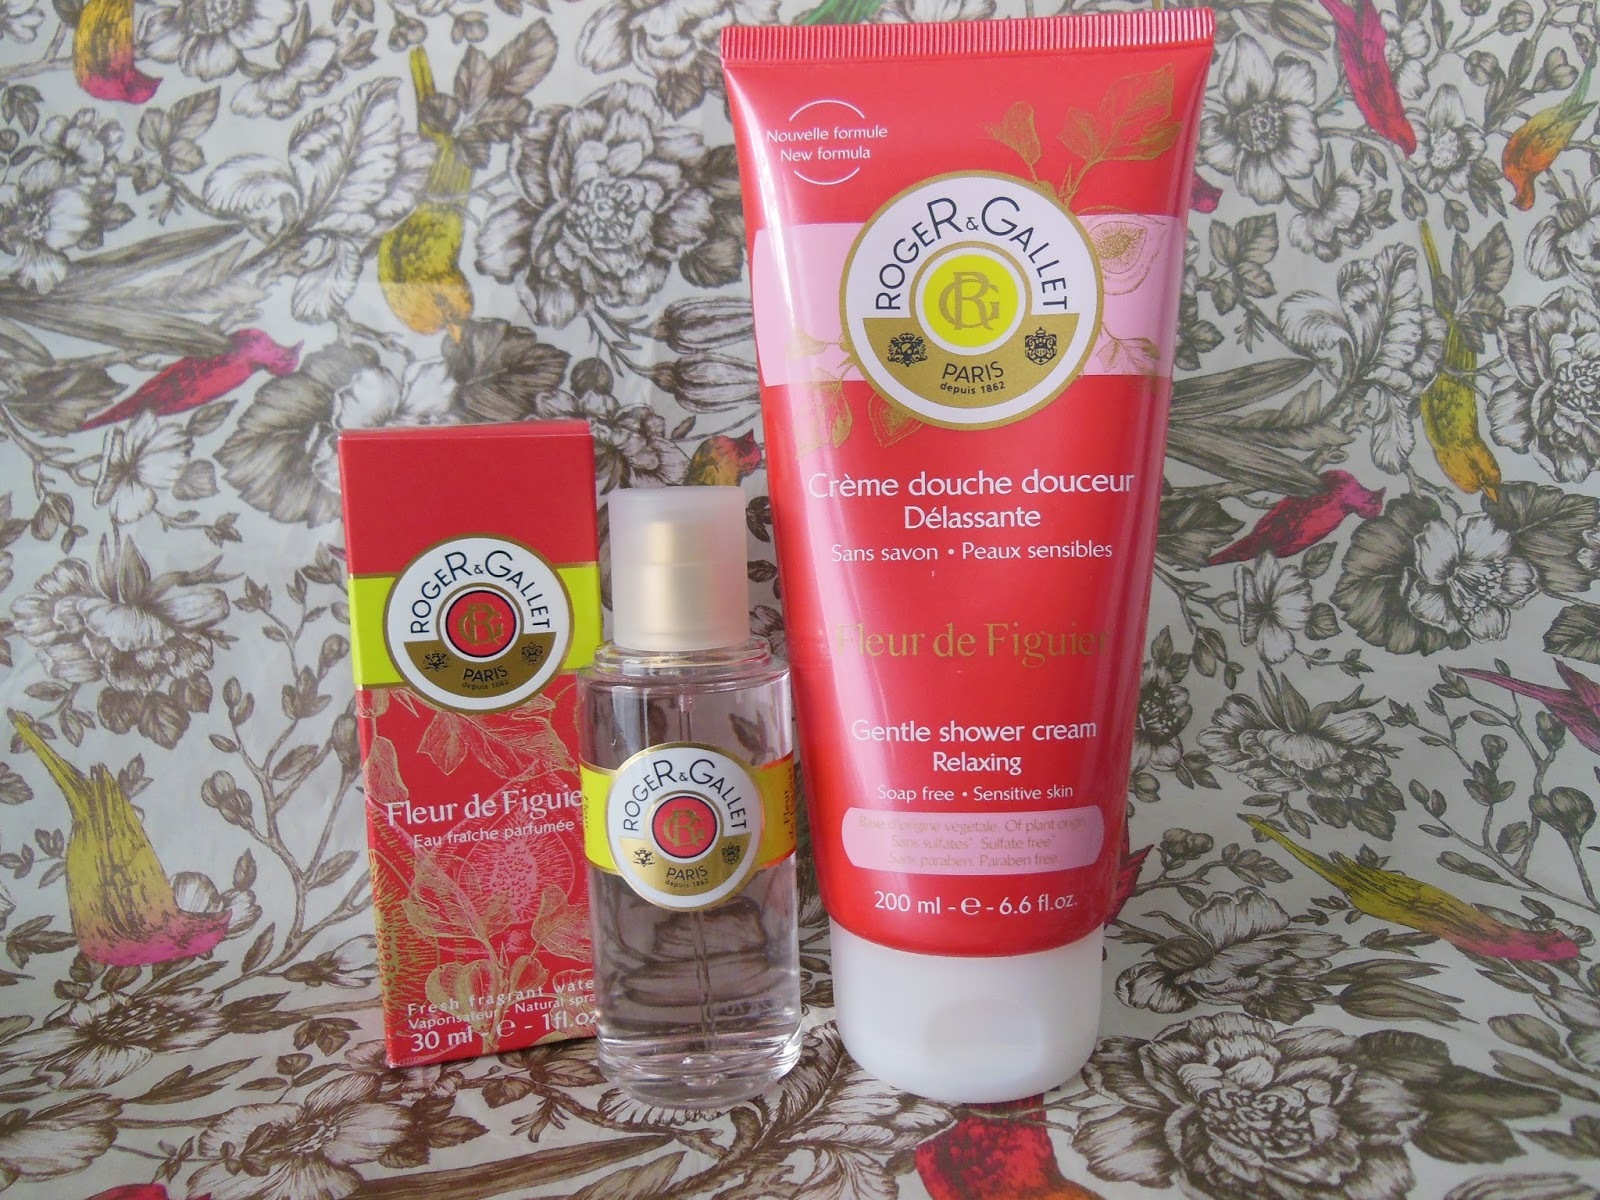 Roger and Gallet fleur de figuier collection